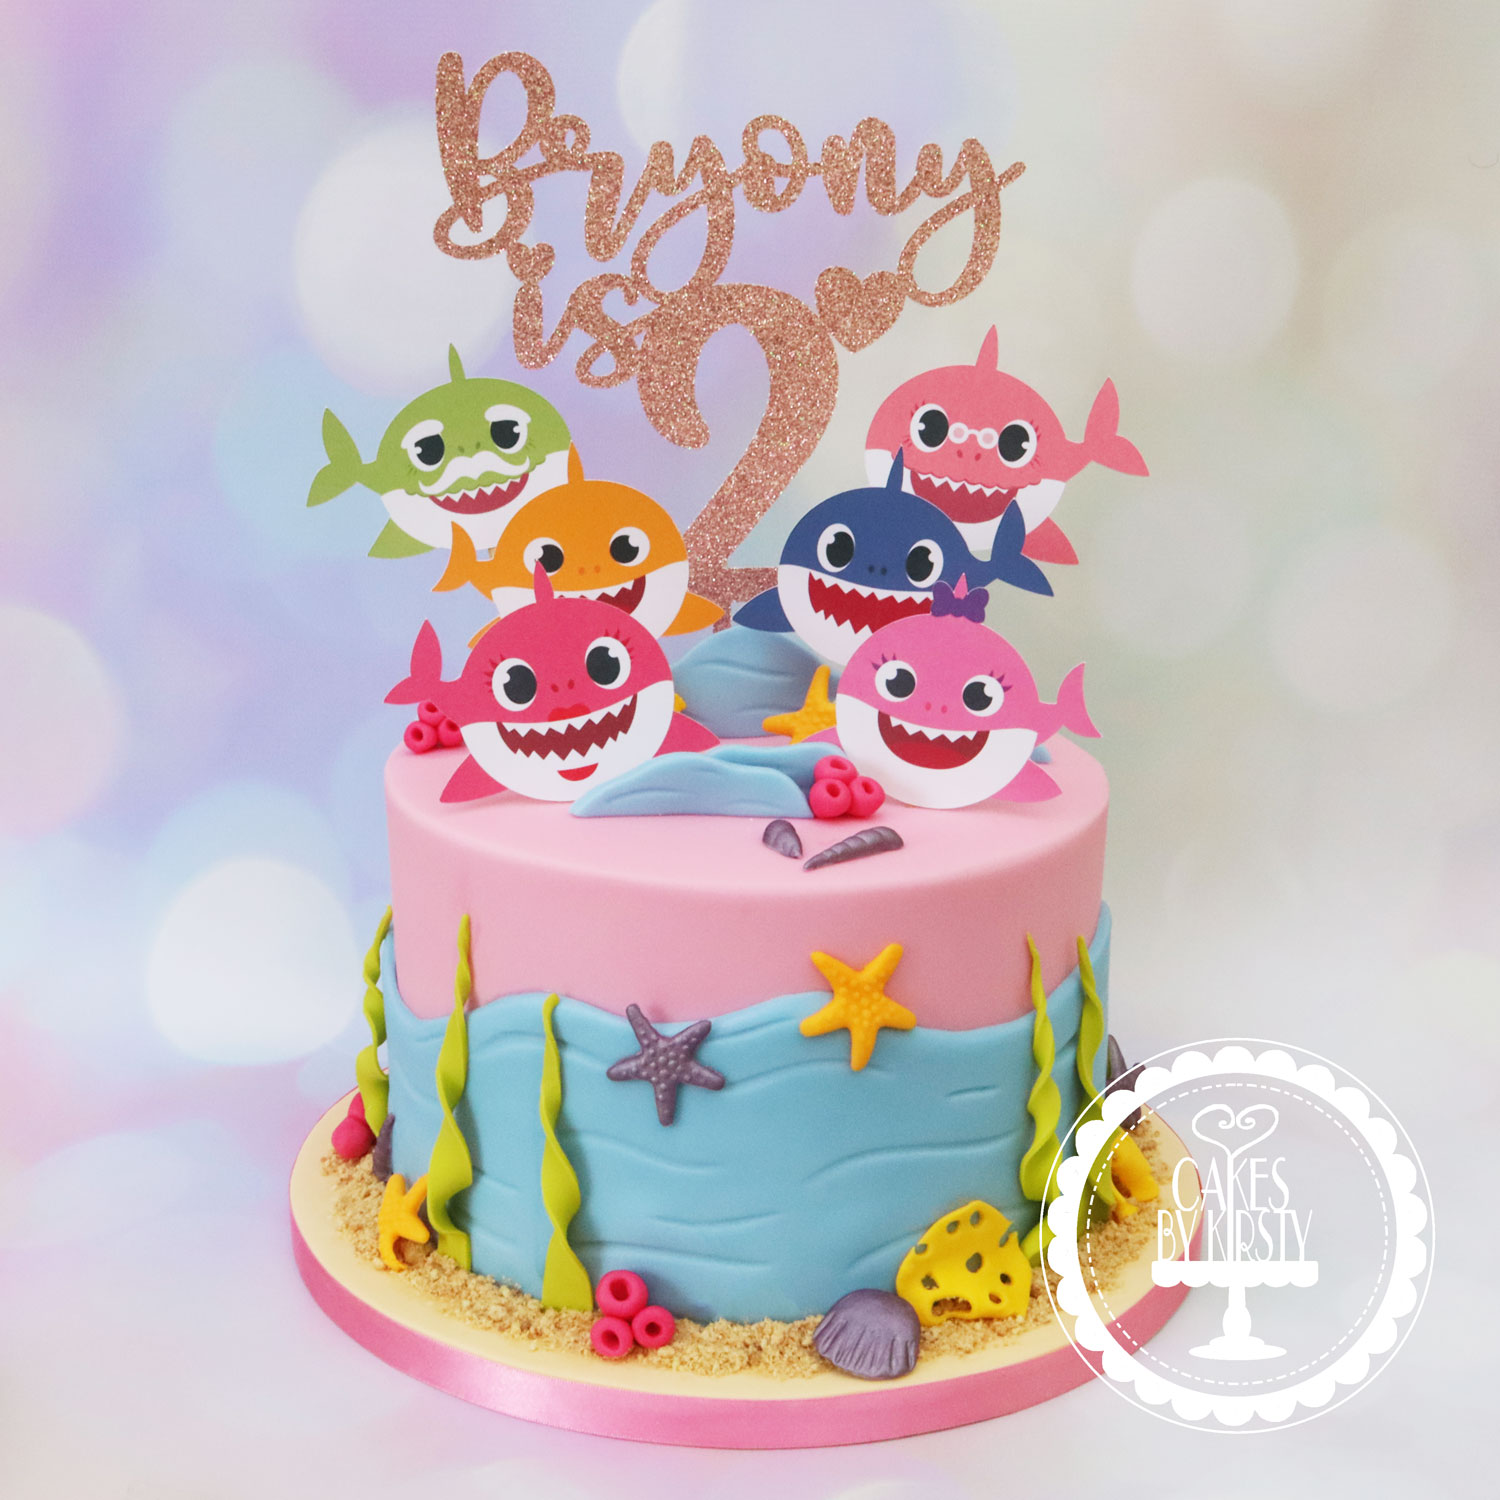 Astounding Cakes By Kirsty Childrens Cakes Funny Birthday Cards Online Elaedamsfinfo